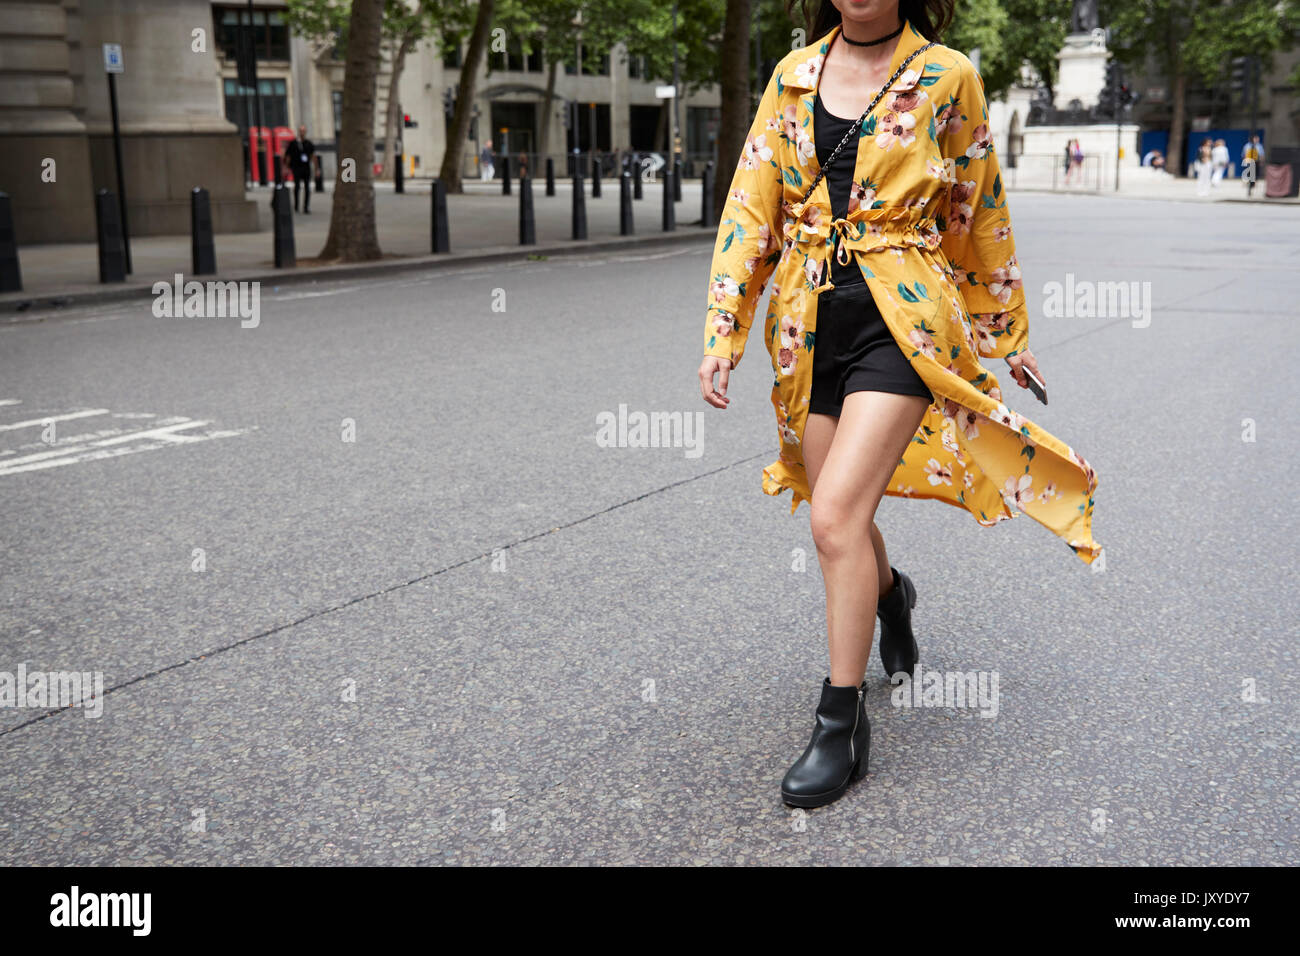 Woman in minidress and floral gown in street, horizontal - Stock Image